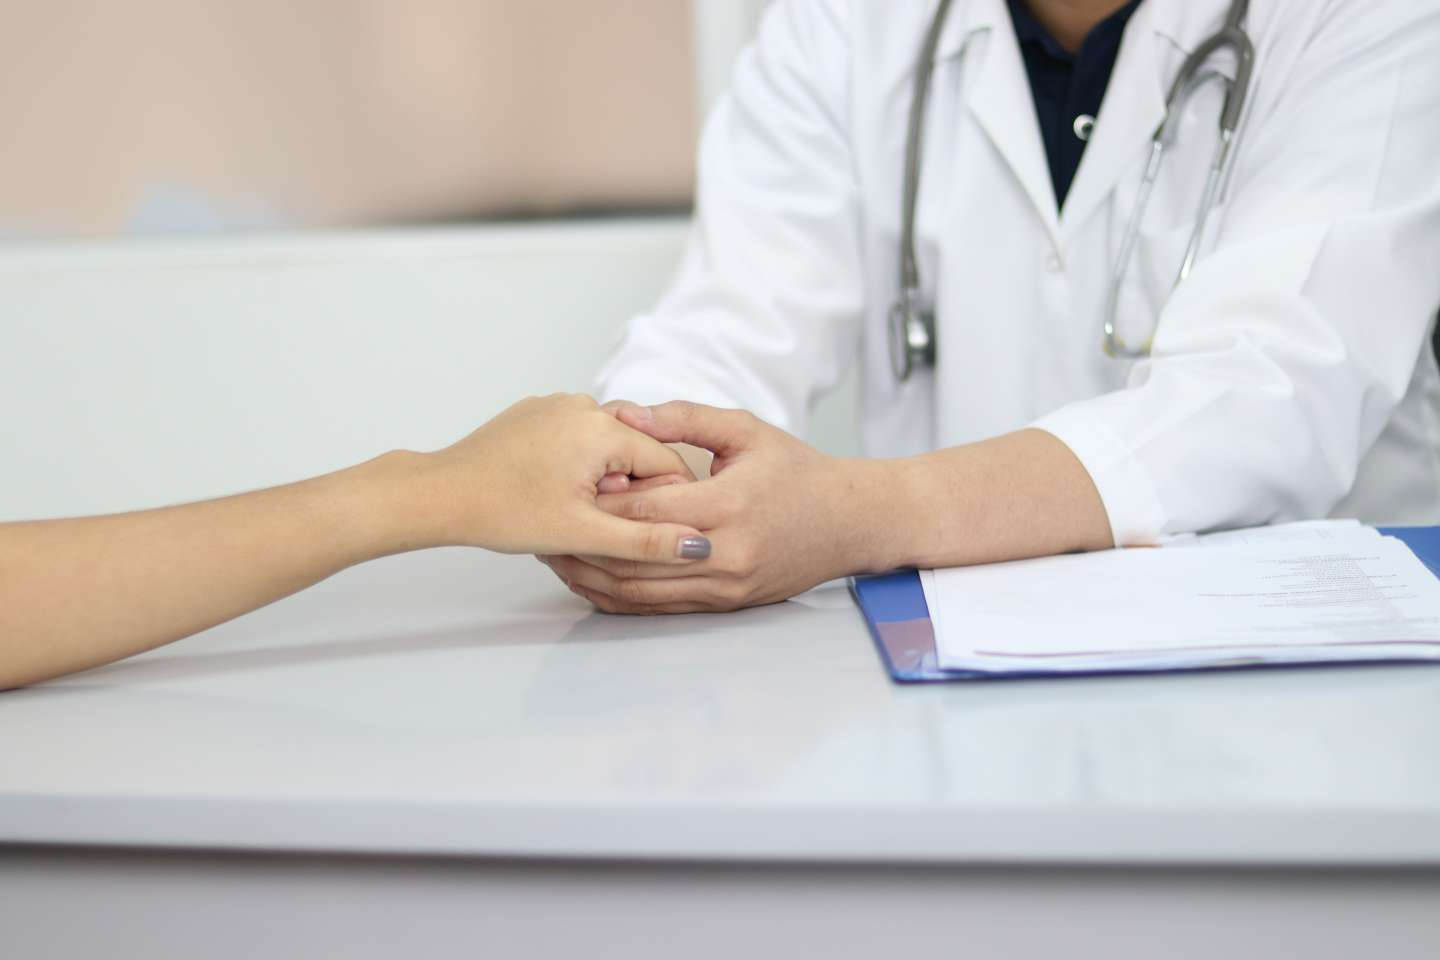 medical person holding hand of a woman